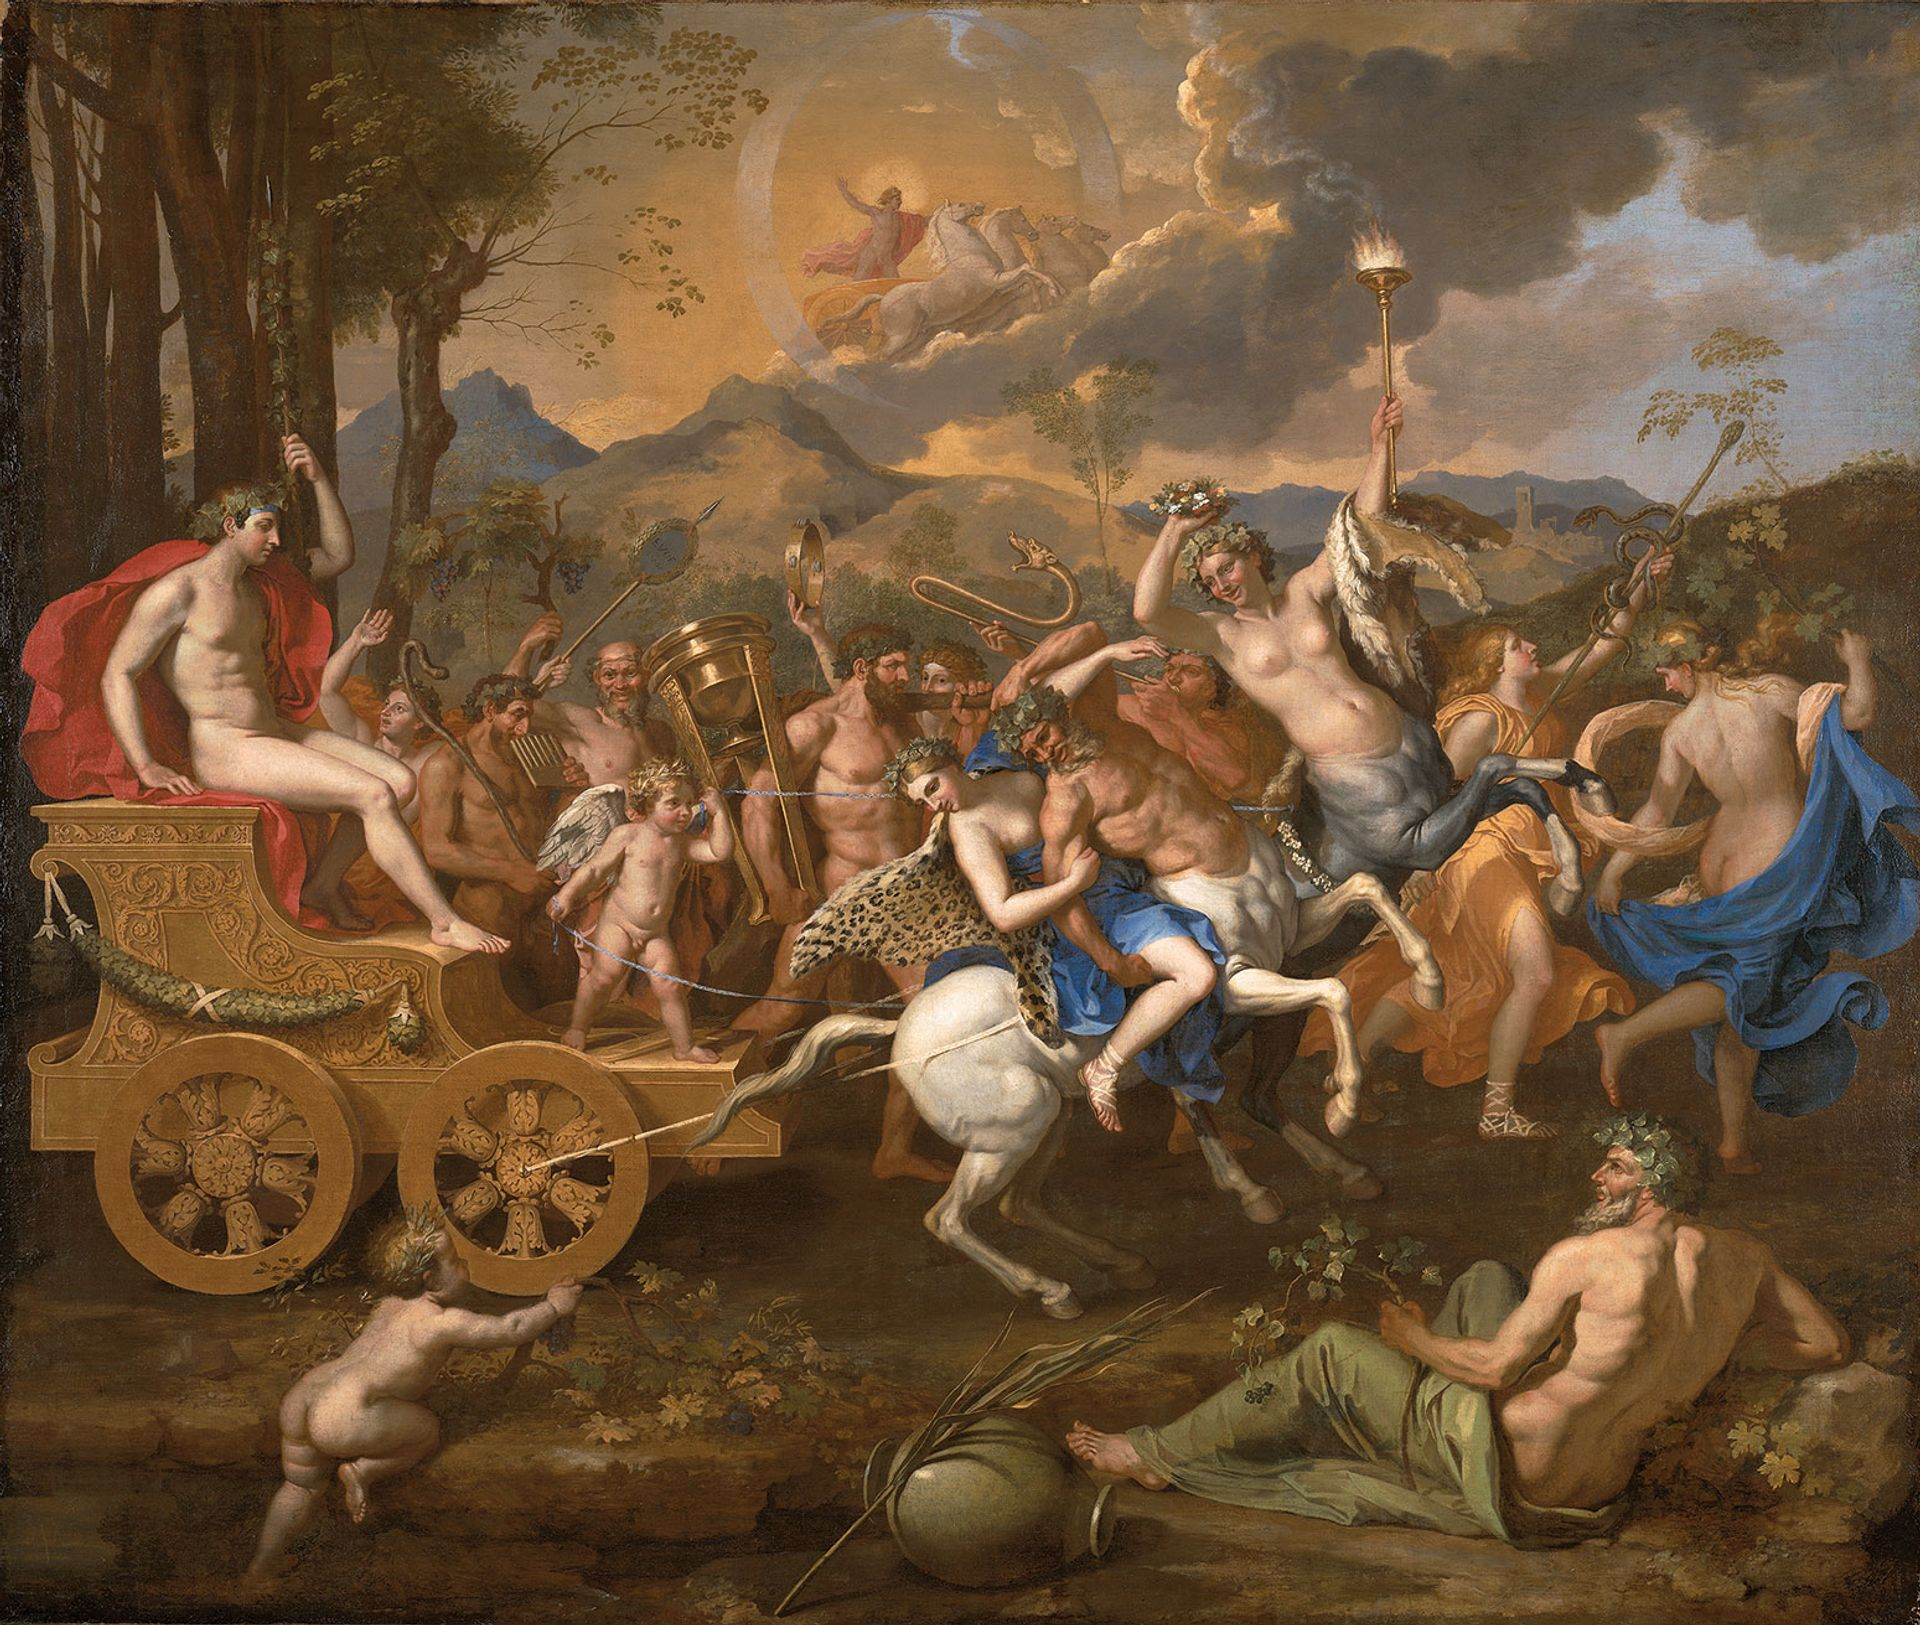 Nicolas Poussin's The Triumph of Bacchus (1635-36) will be on loan from the Nelson-Atkins Museum of Art in Kansas City Photo: © John Lamberton; courtesy of Nelson-Atkins Museum of Art, Media Services